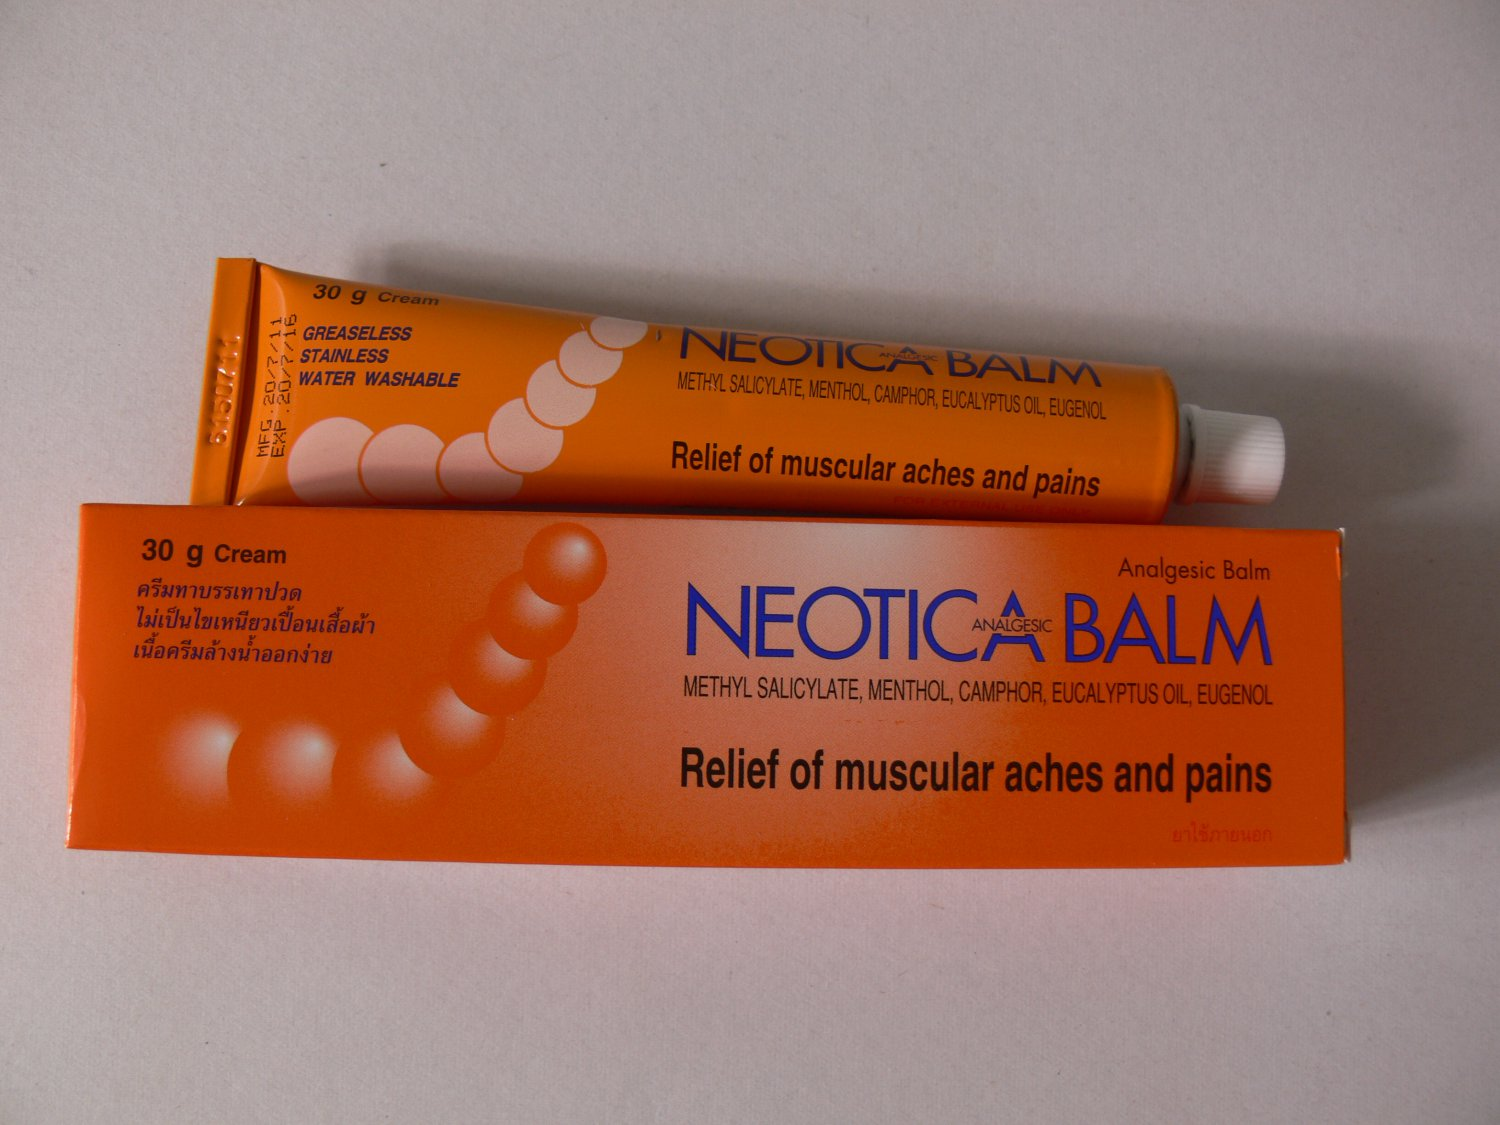 Pain Relief Muscle Ache Arthritic Rheumatic Strain Sprain Insect Bite Neotica Analgesic Balm 30g